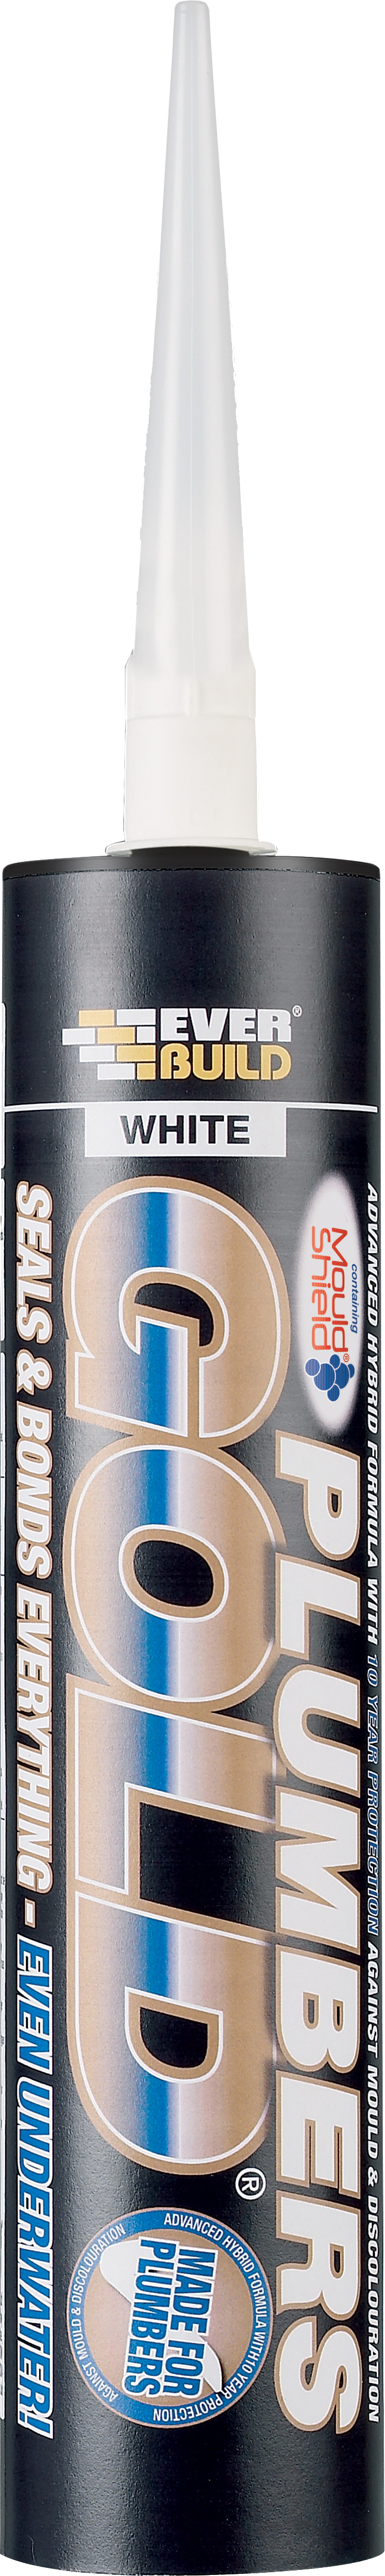 Everbuild Plumbers Gold - White - 290ml